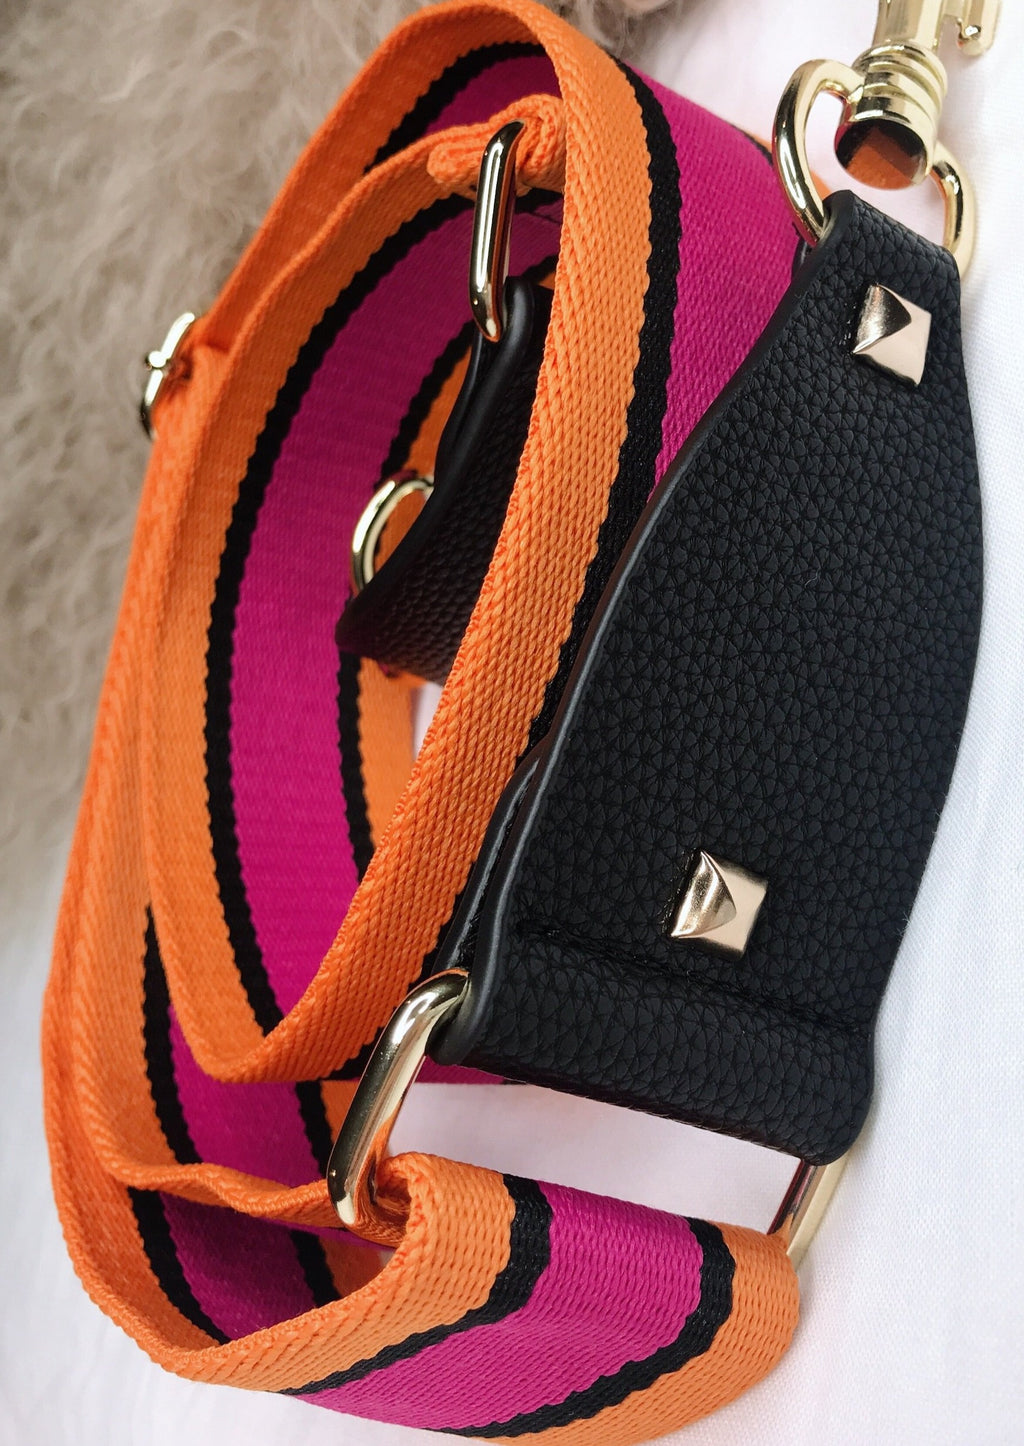 Clearly Handbag Strap - Cindy Lauper